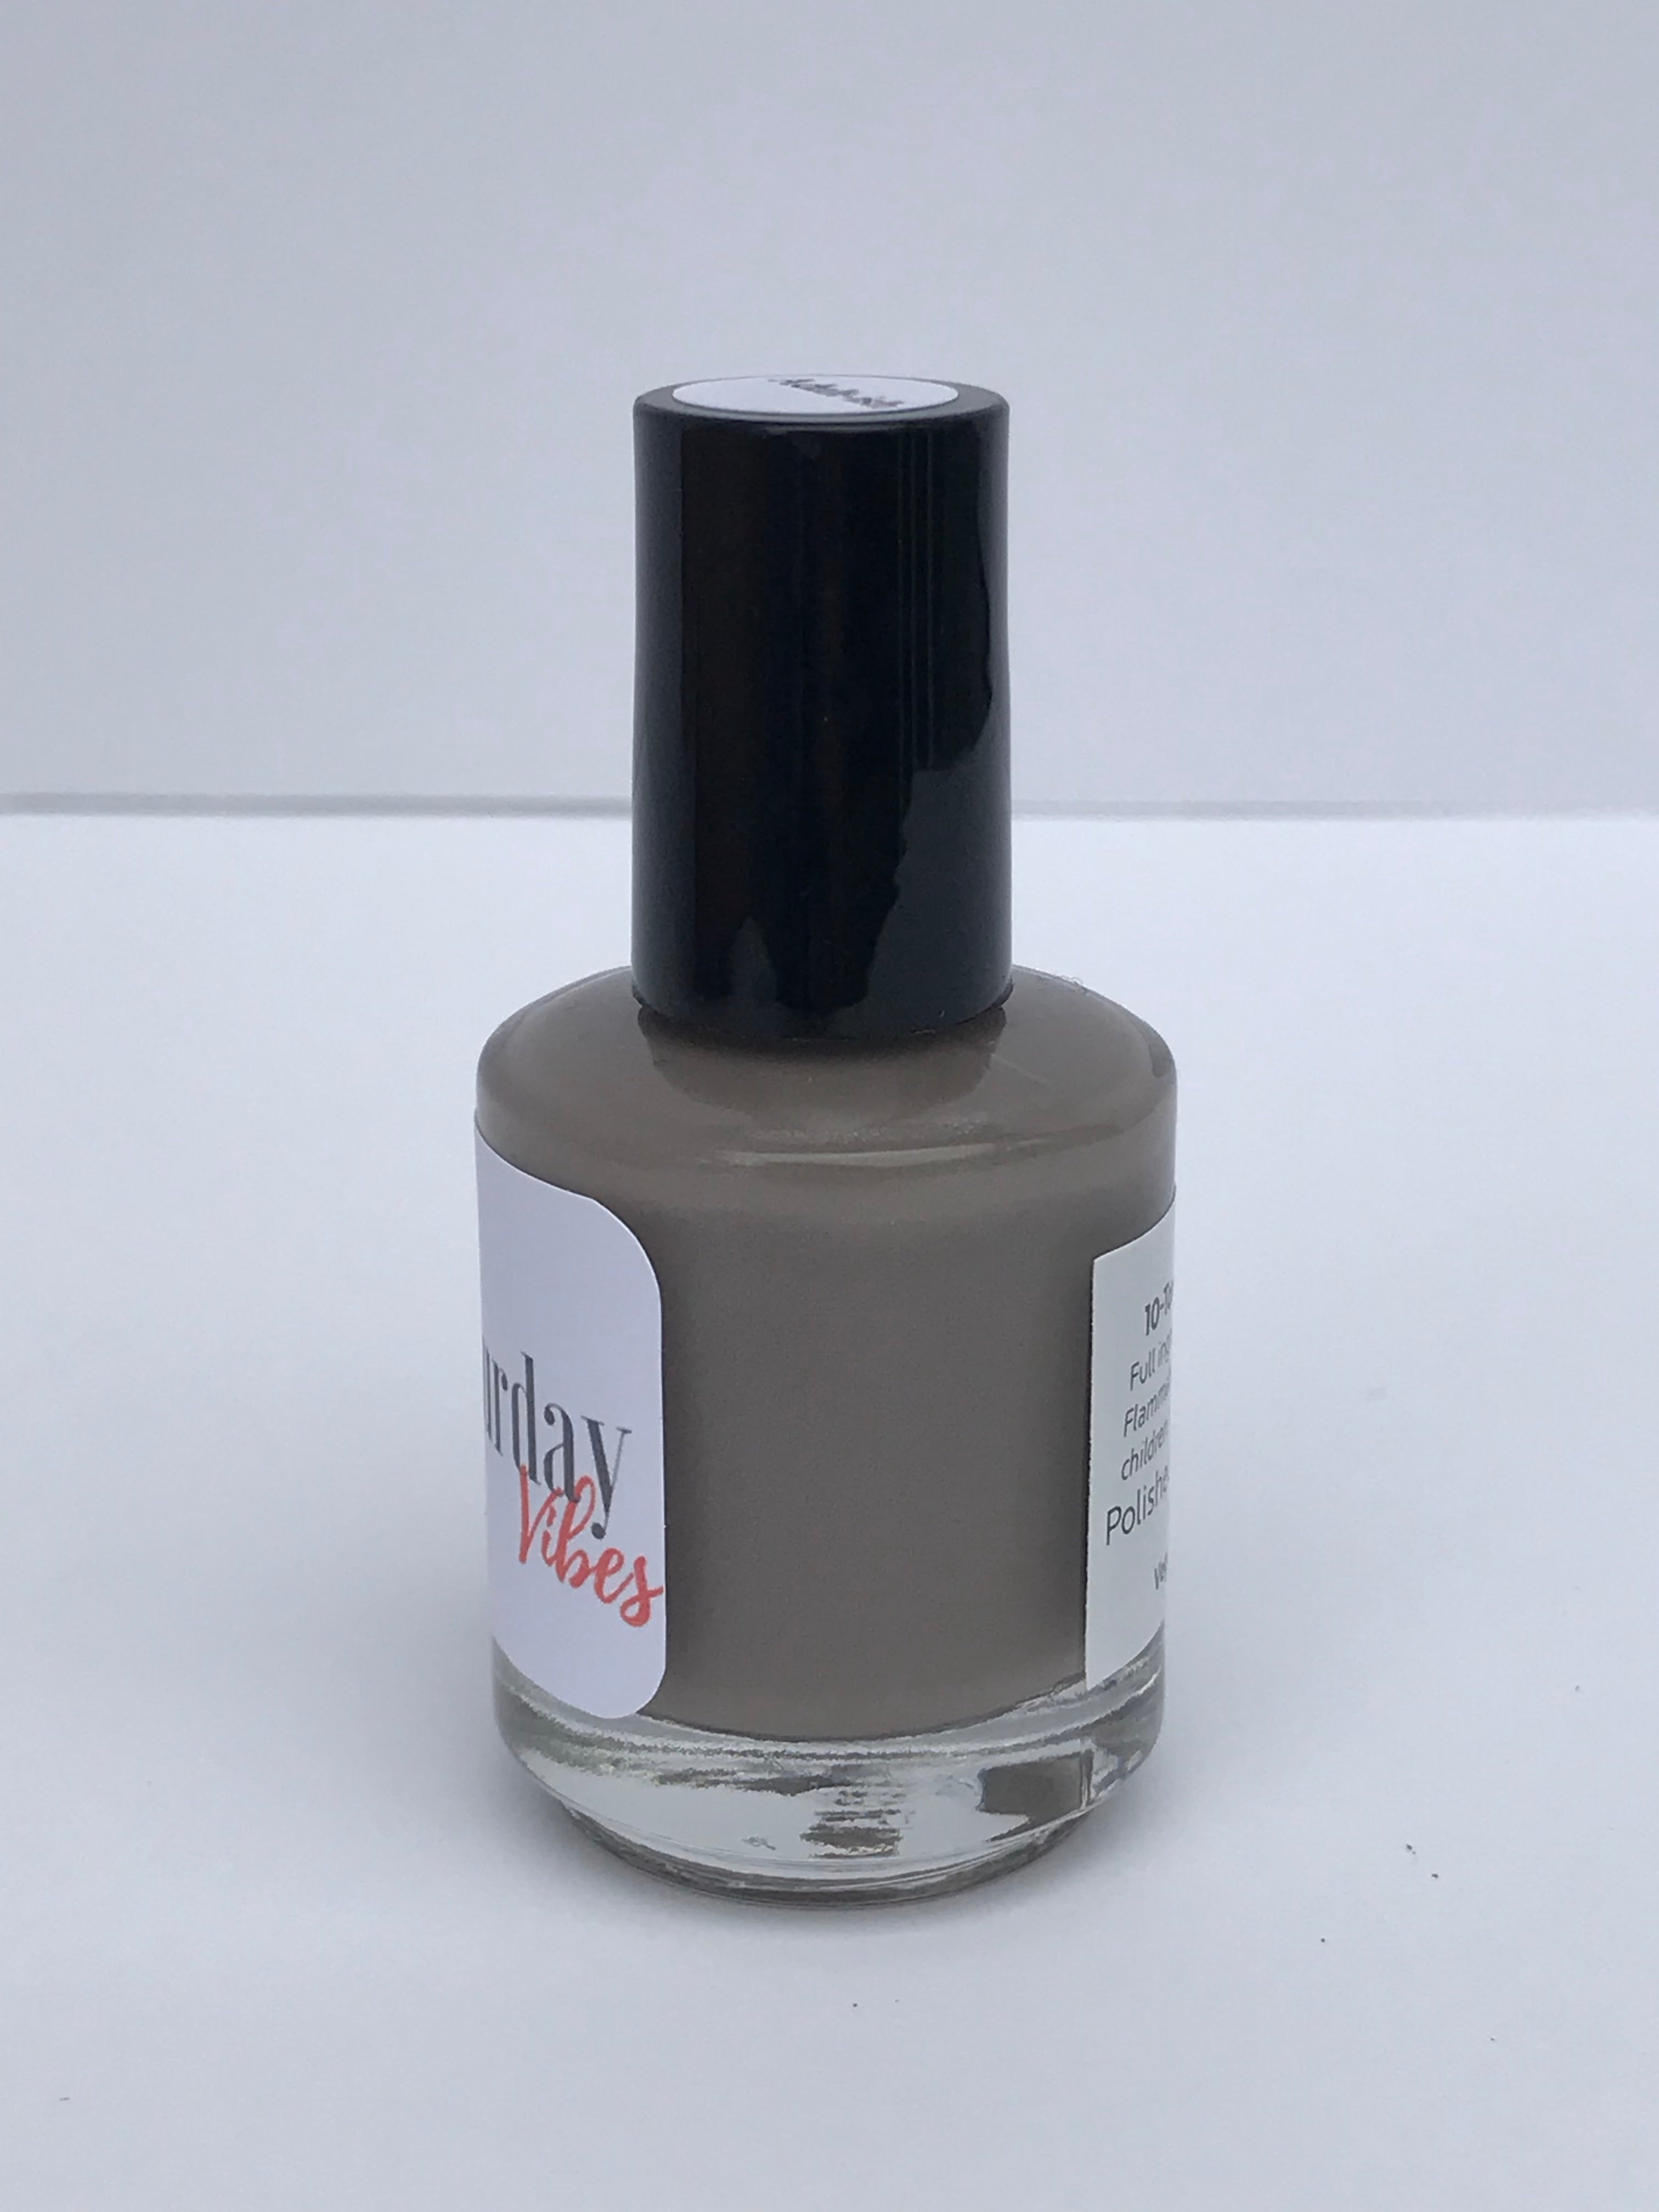 greige neutral nail color brown grey adult-ish nail polish toxin free polished state of mind northern nail polish